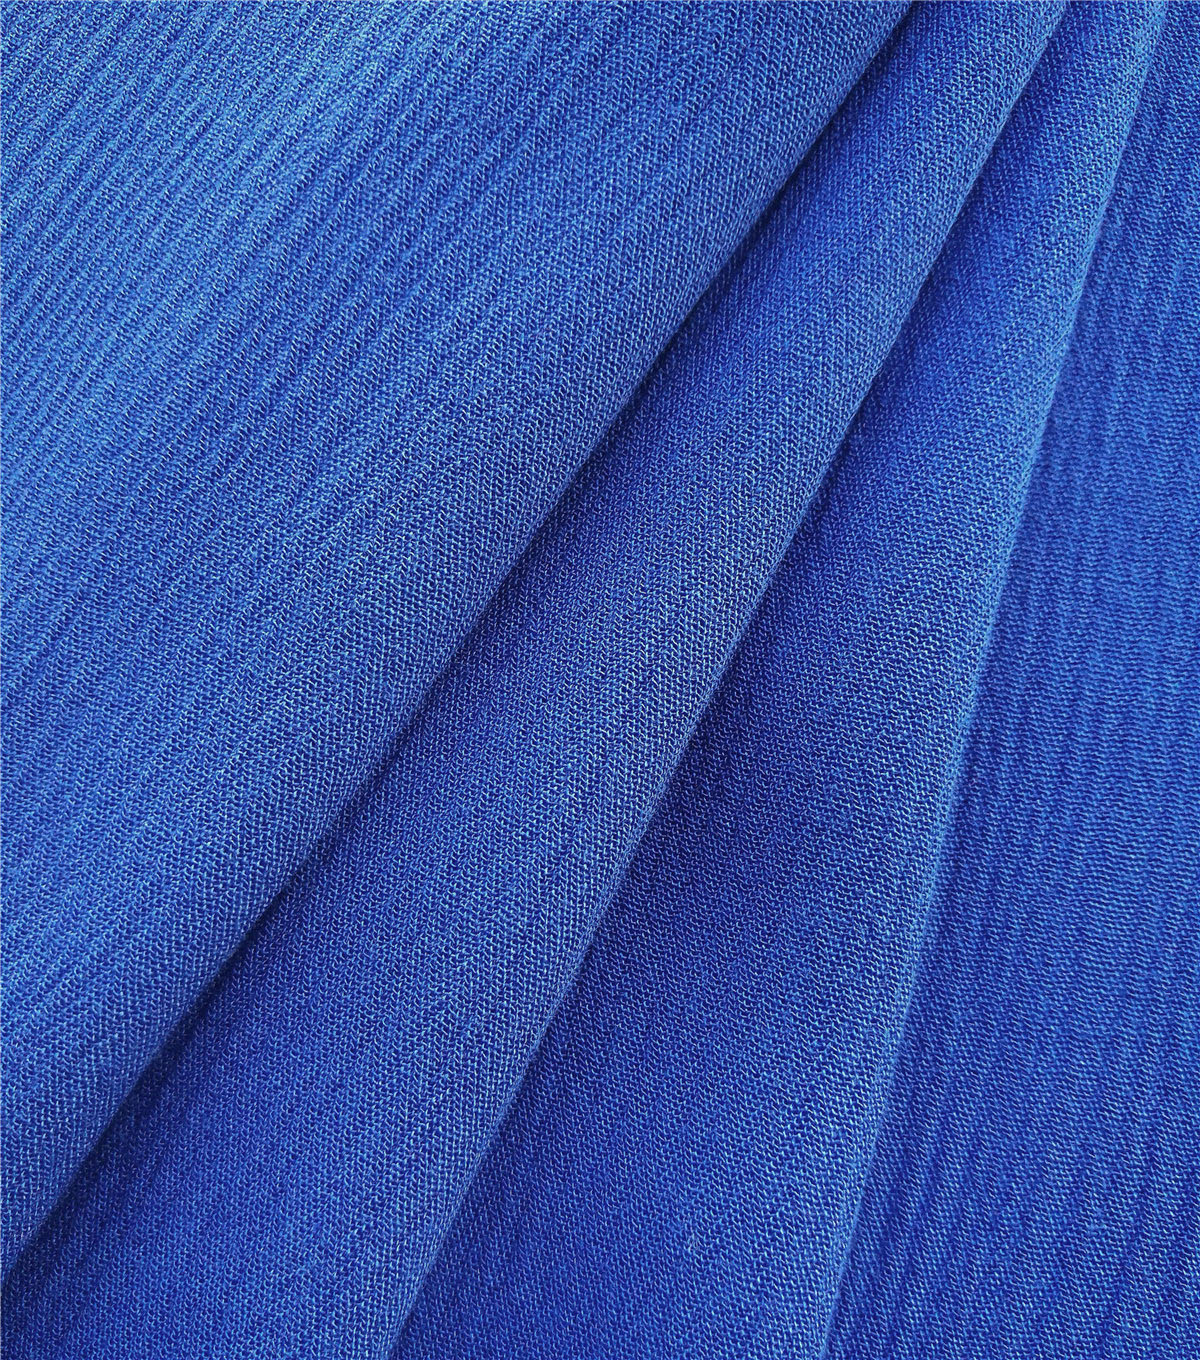 Silky Solids Crinkle Rayon Fabric-Dazzling Blue